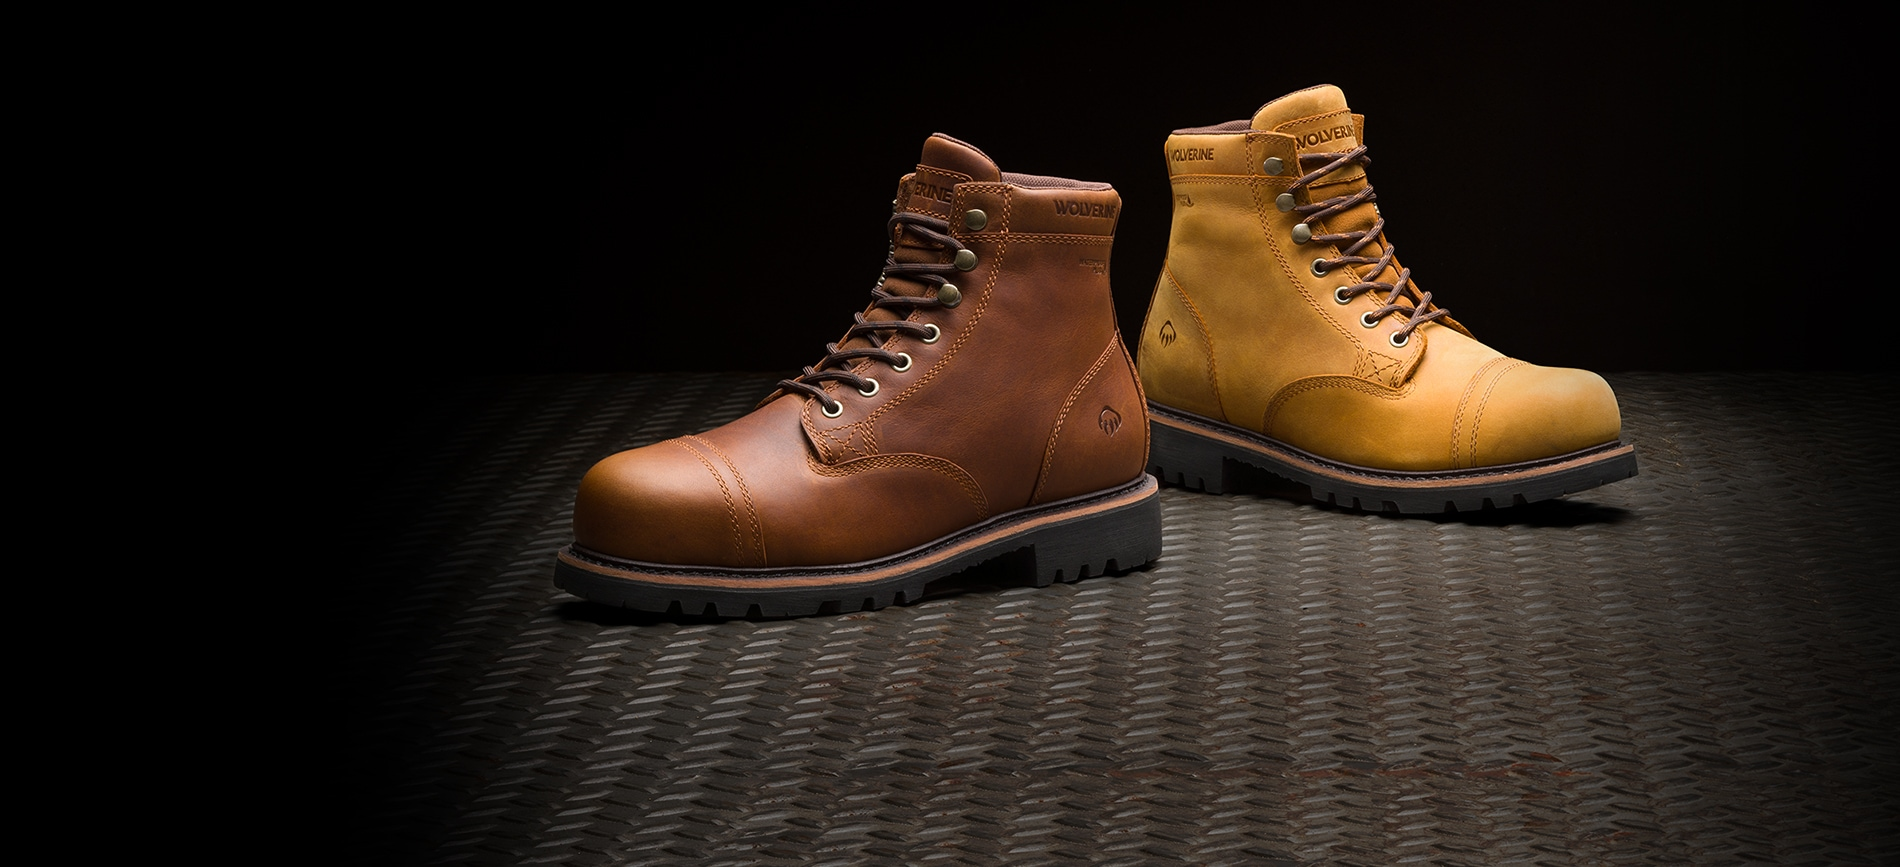 2 Colors of the Journeyman boot sitting on a steel surface